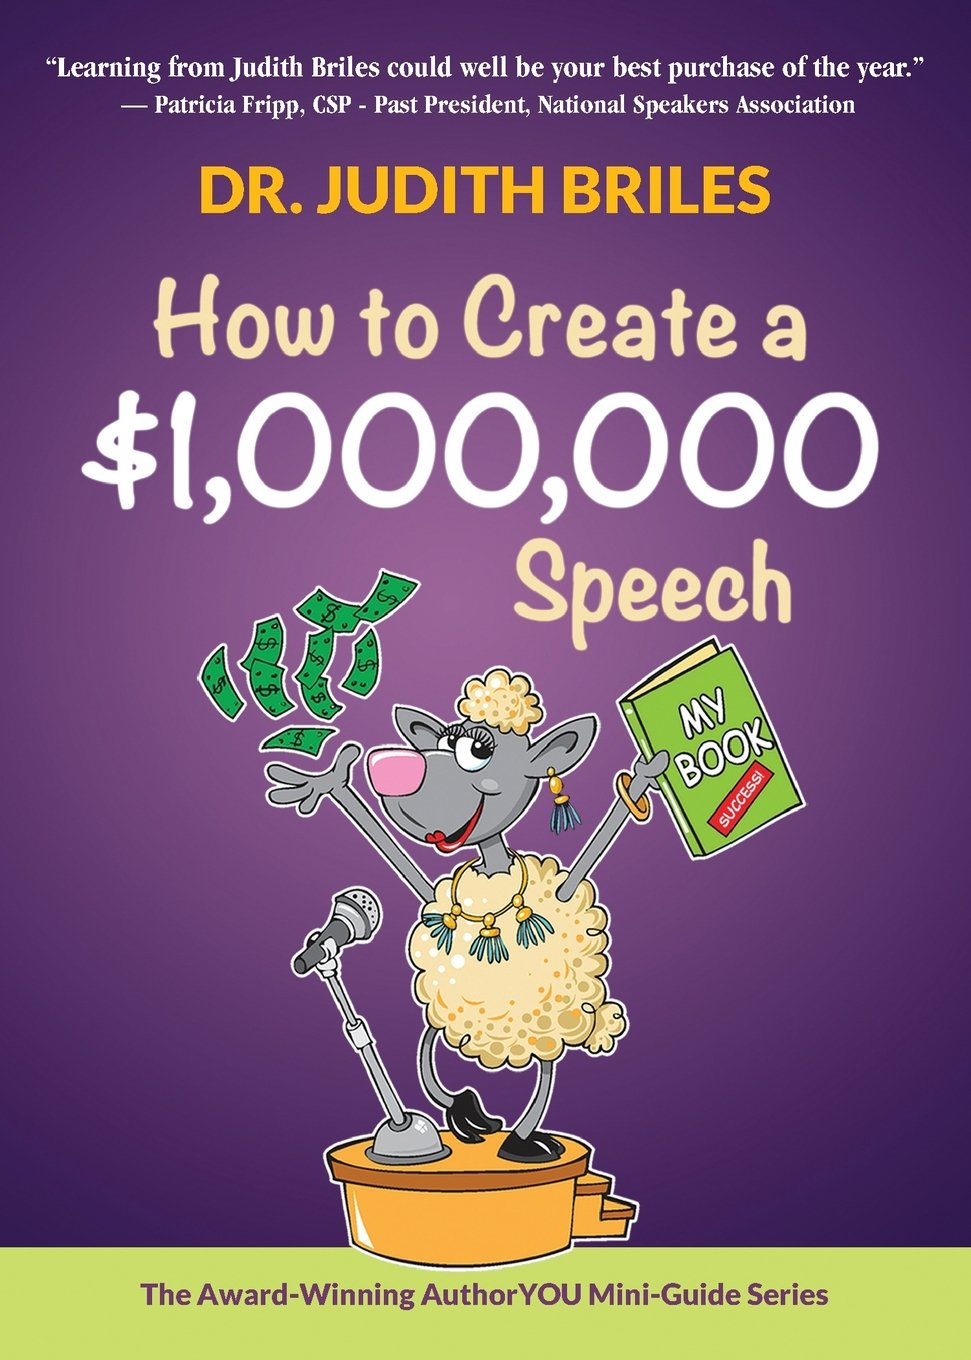 How to Create a $1,000,000 Speech - Learn how to write a speech; become a public and professional speaker; and talk like TED (Authoryou Mini-Guides) by Mile High Press